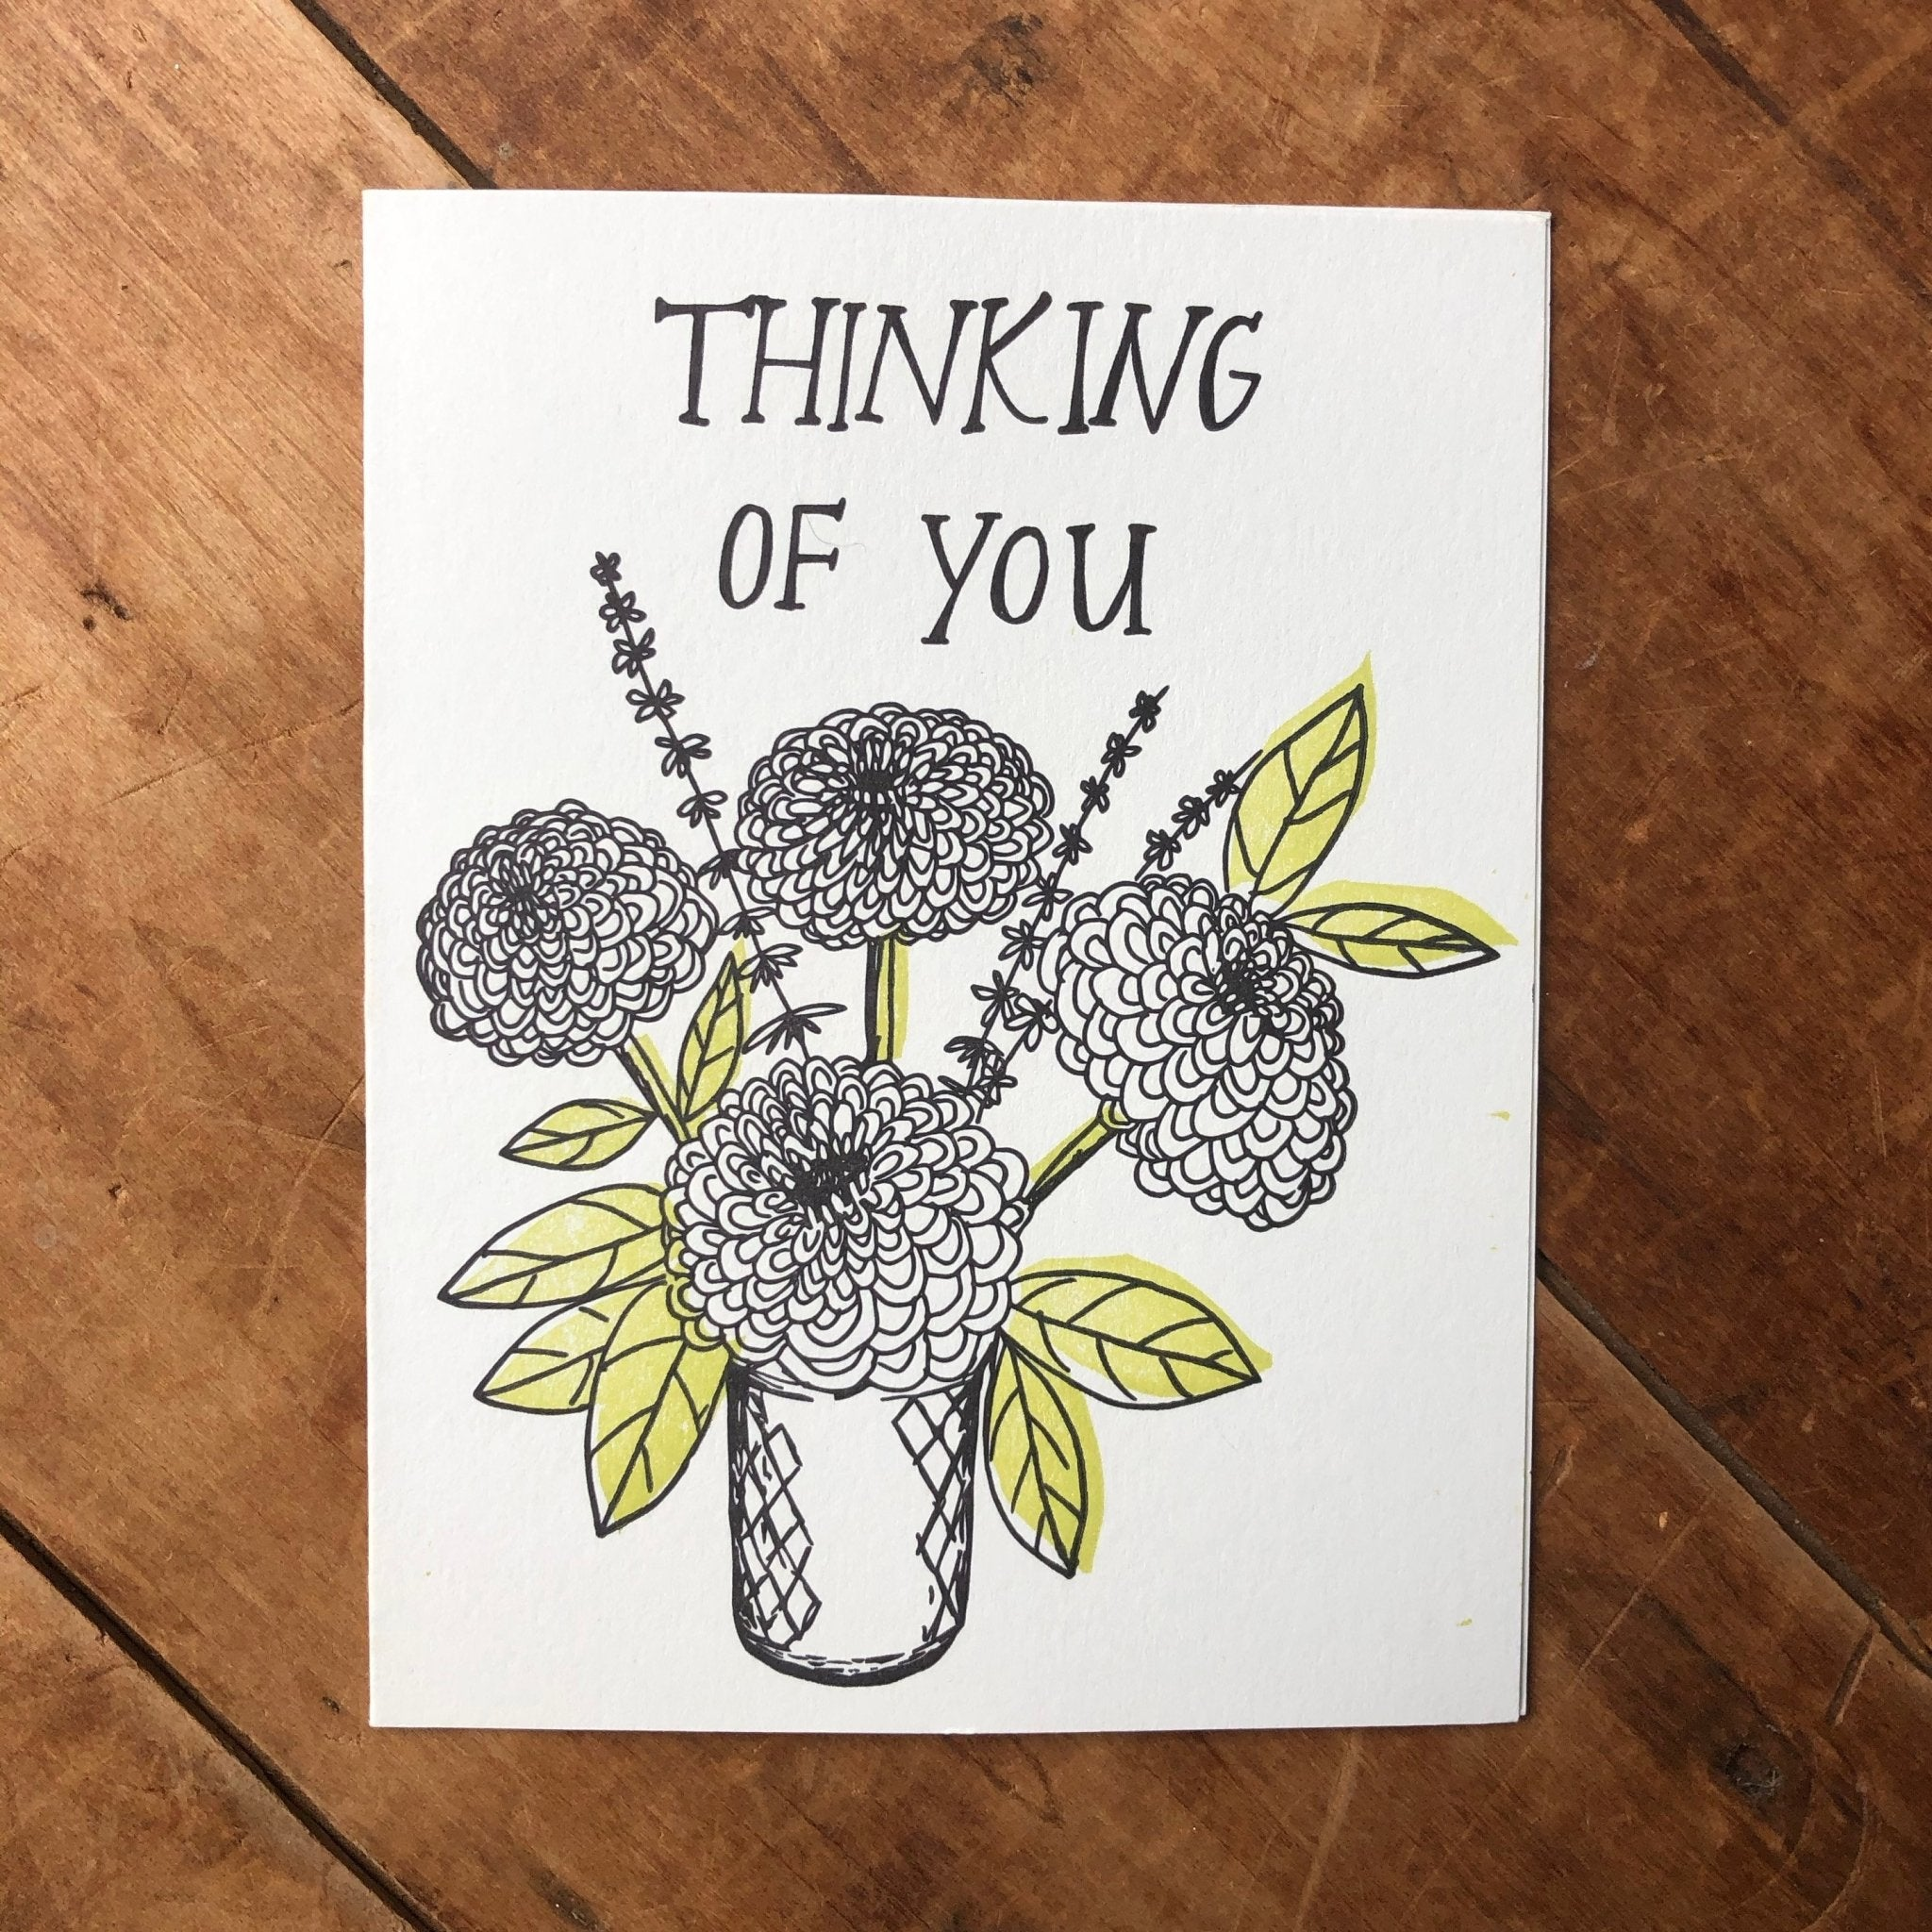 Thinking of You Bouquet Sympathy Card - Ratbee Press -Freehand Market